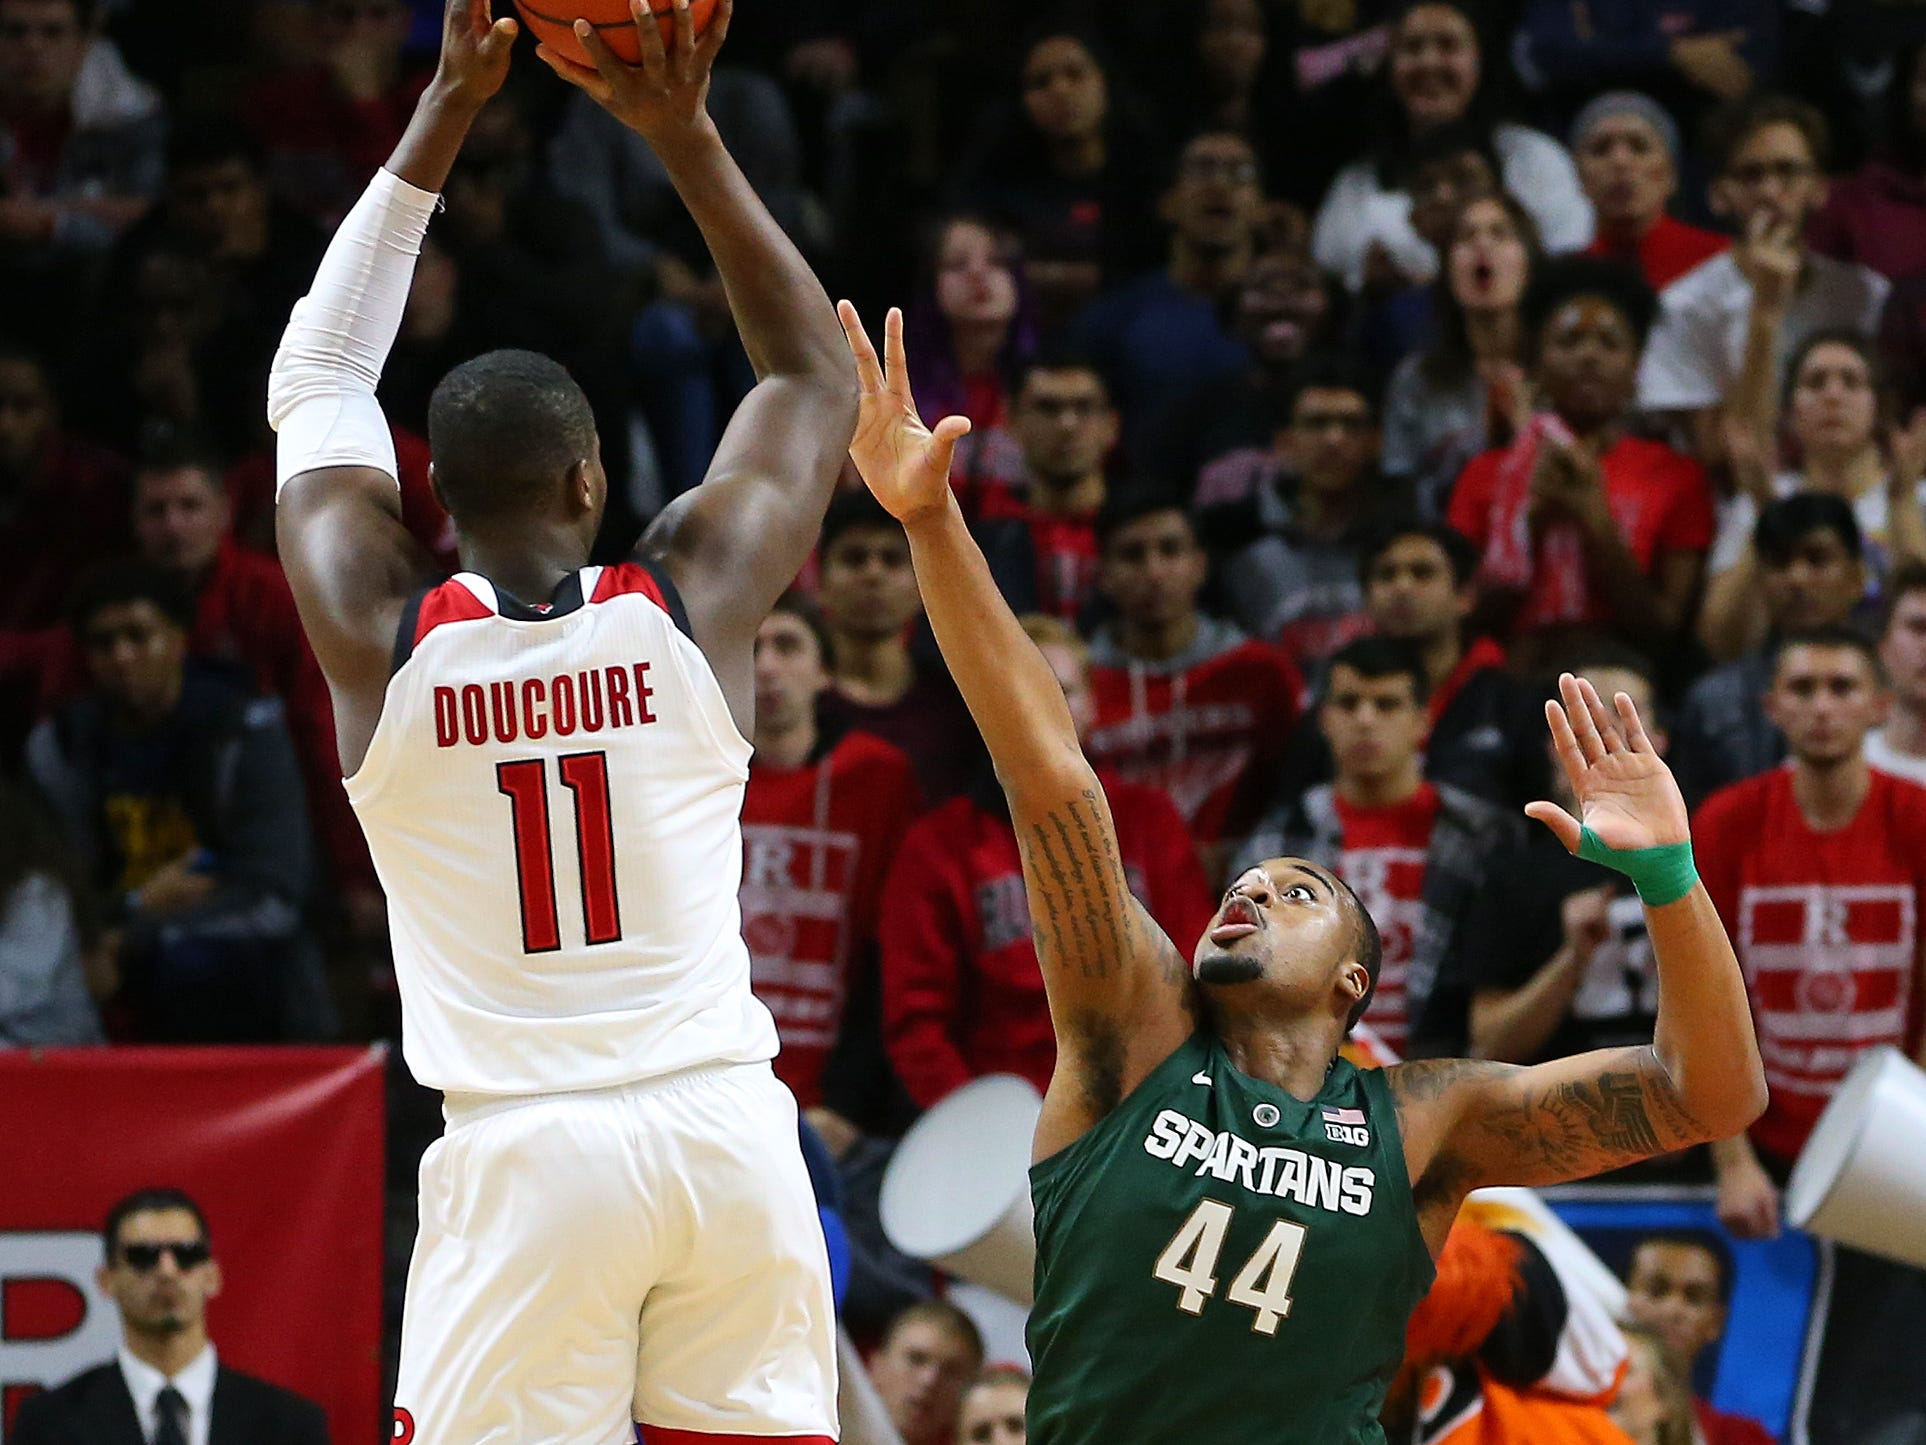 Mamadou Doucoure #11 of the Rutgers Scarlet Knights attempts a shot as Nick Ward #44 of the Michigan State Spartans defends during the first half of a college basketball game at the Rutgers Athletic Center on November 30, 2018 in Piscataway, New Jersey.